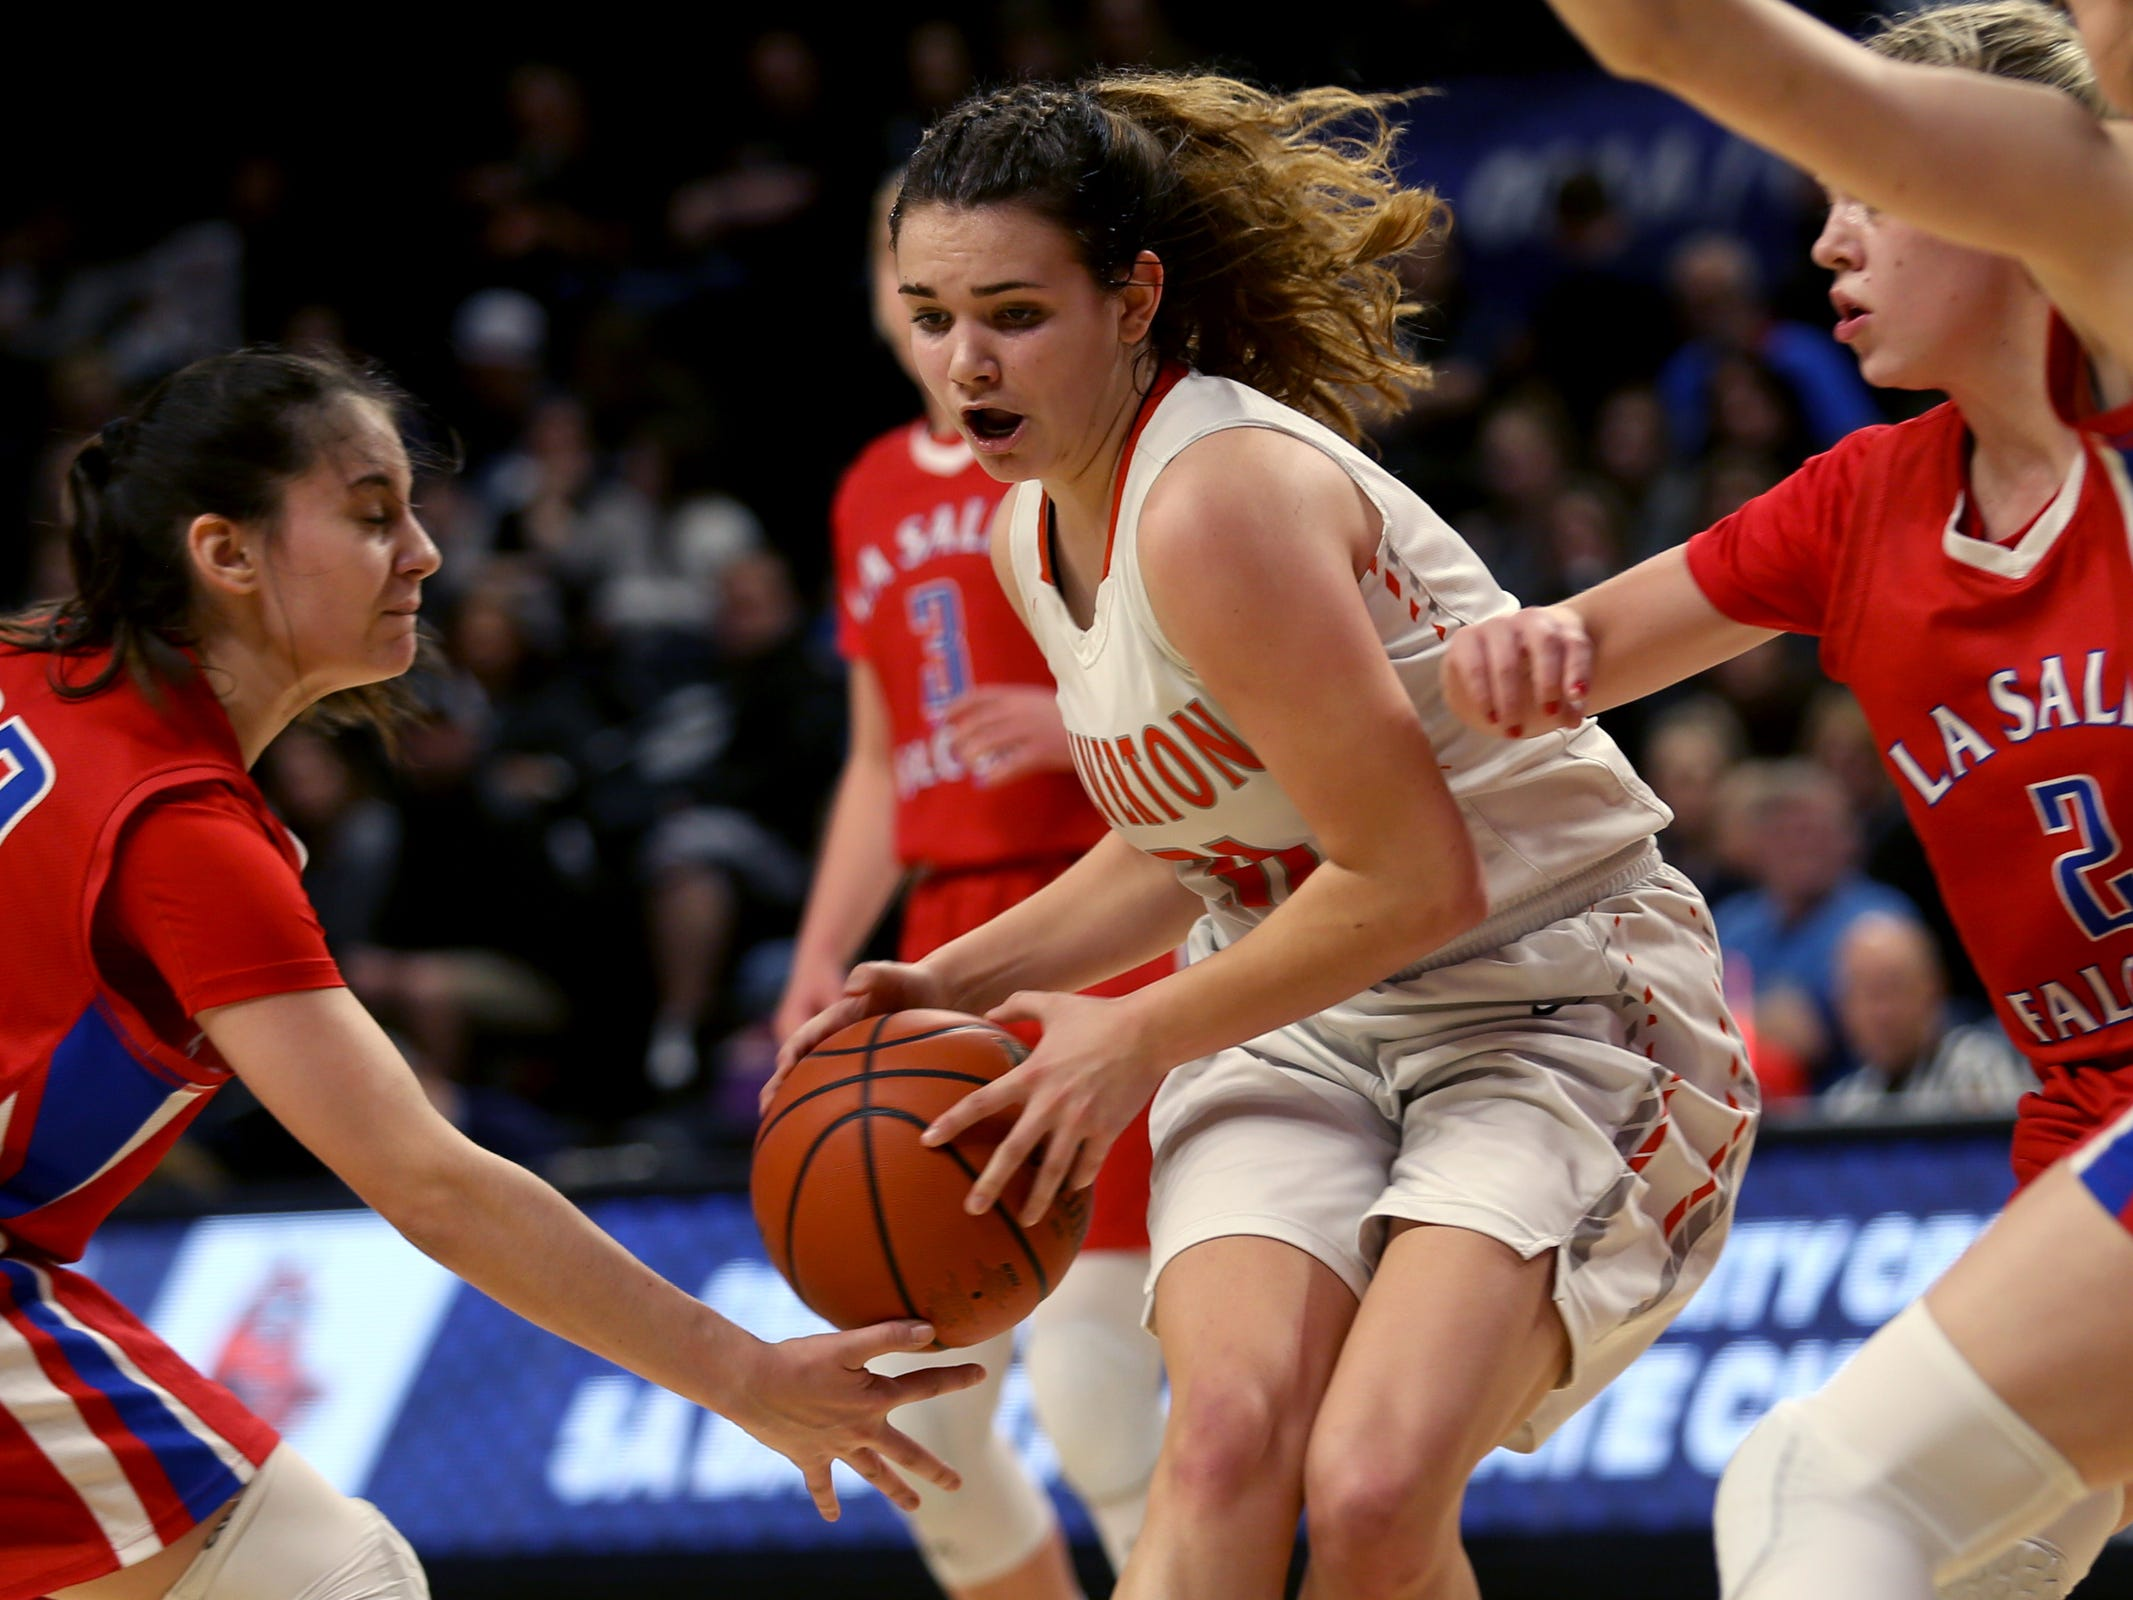 Silverton's Josslyn Ames (31)  fights to keep control of the ball in the first half of the La Salle Prep vs. Silverton girls basketball game in the OSAA Class 5A quarterfinals at Oregon State University in Corvallis on Thursday, March 7, 2019. La Salle Prep won the game 57-46.